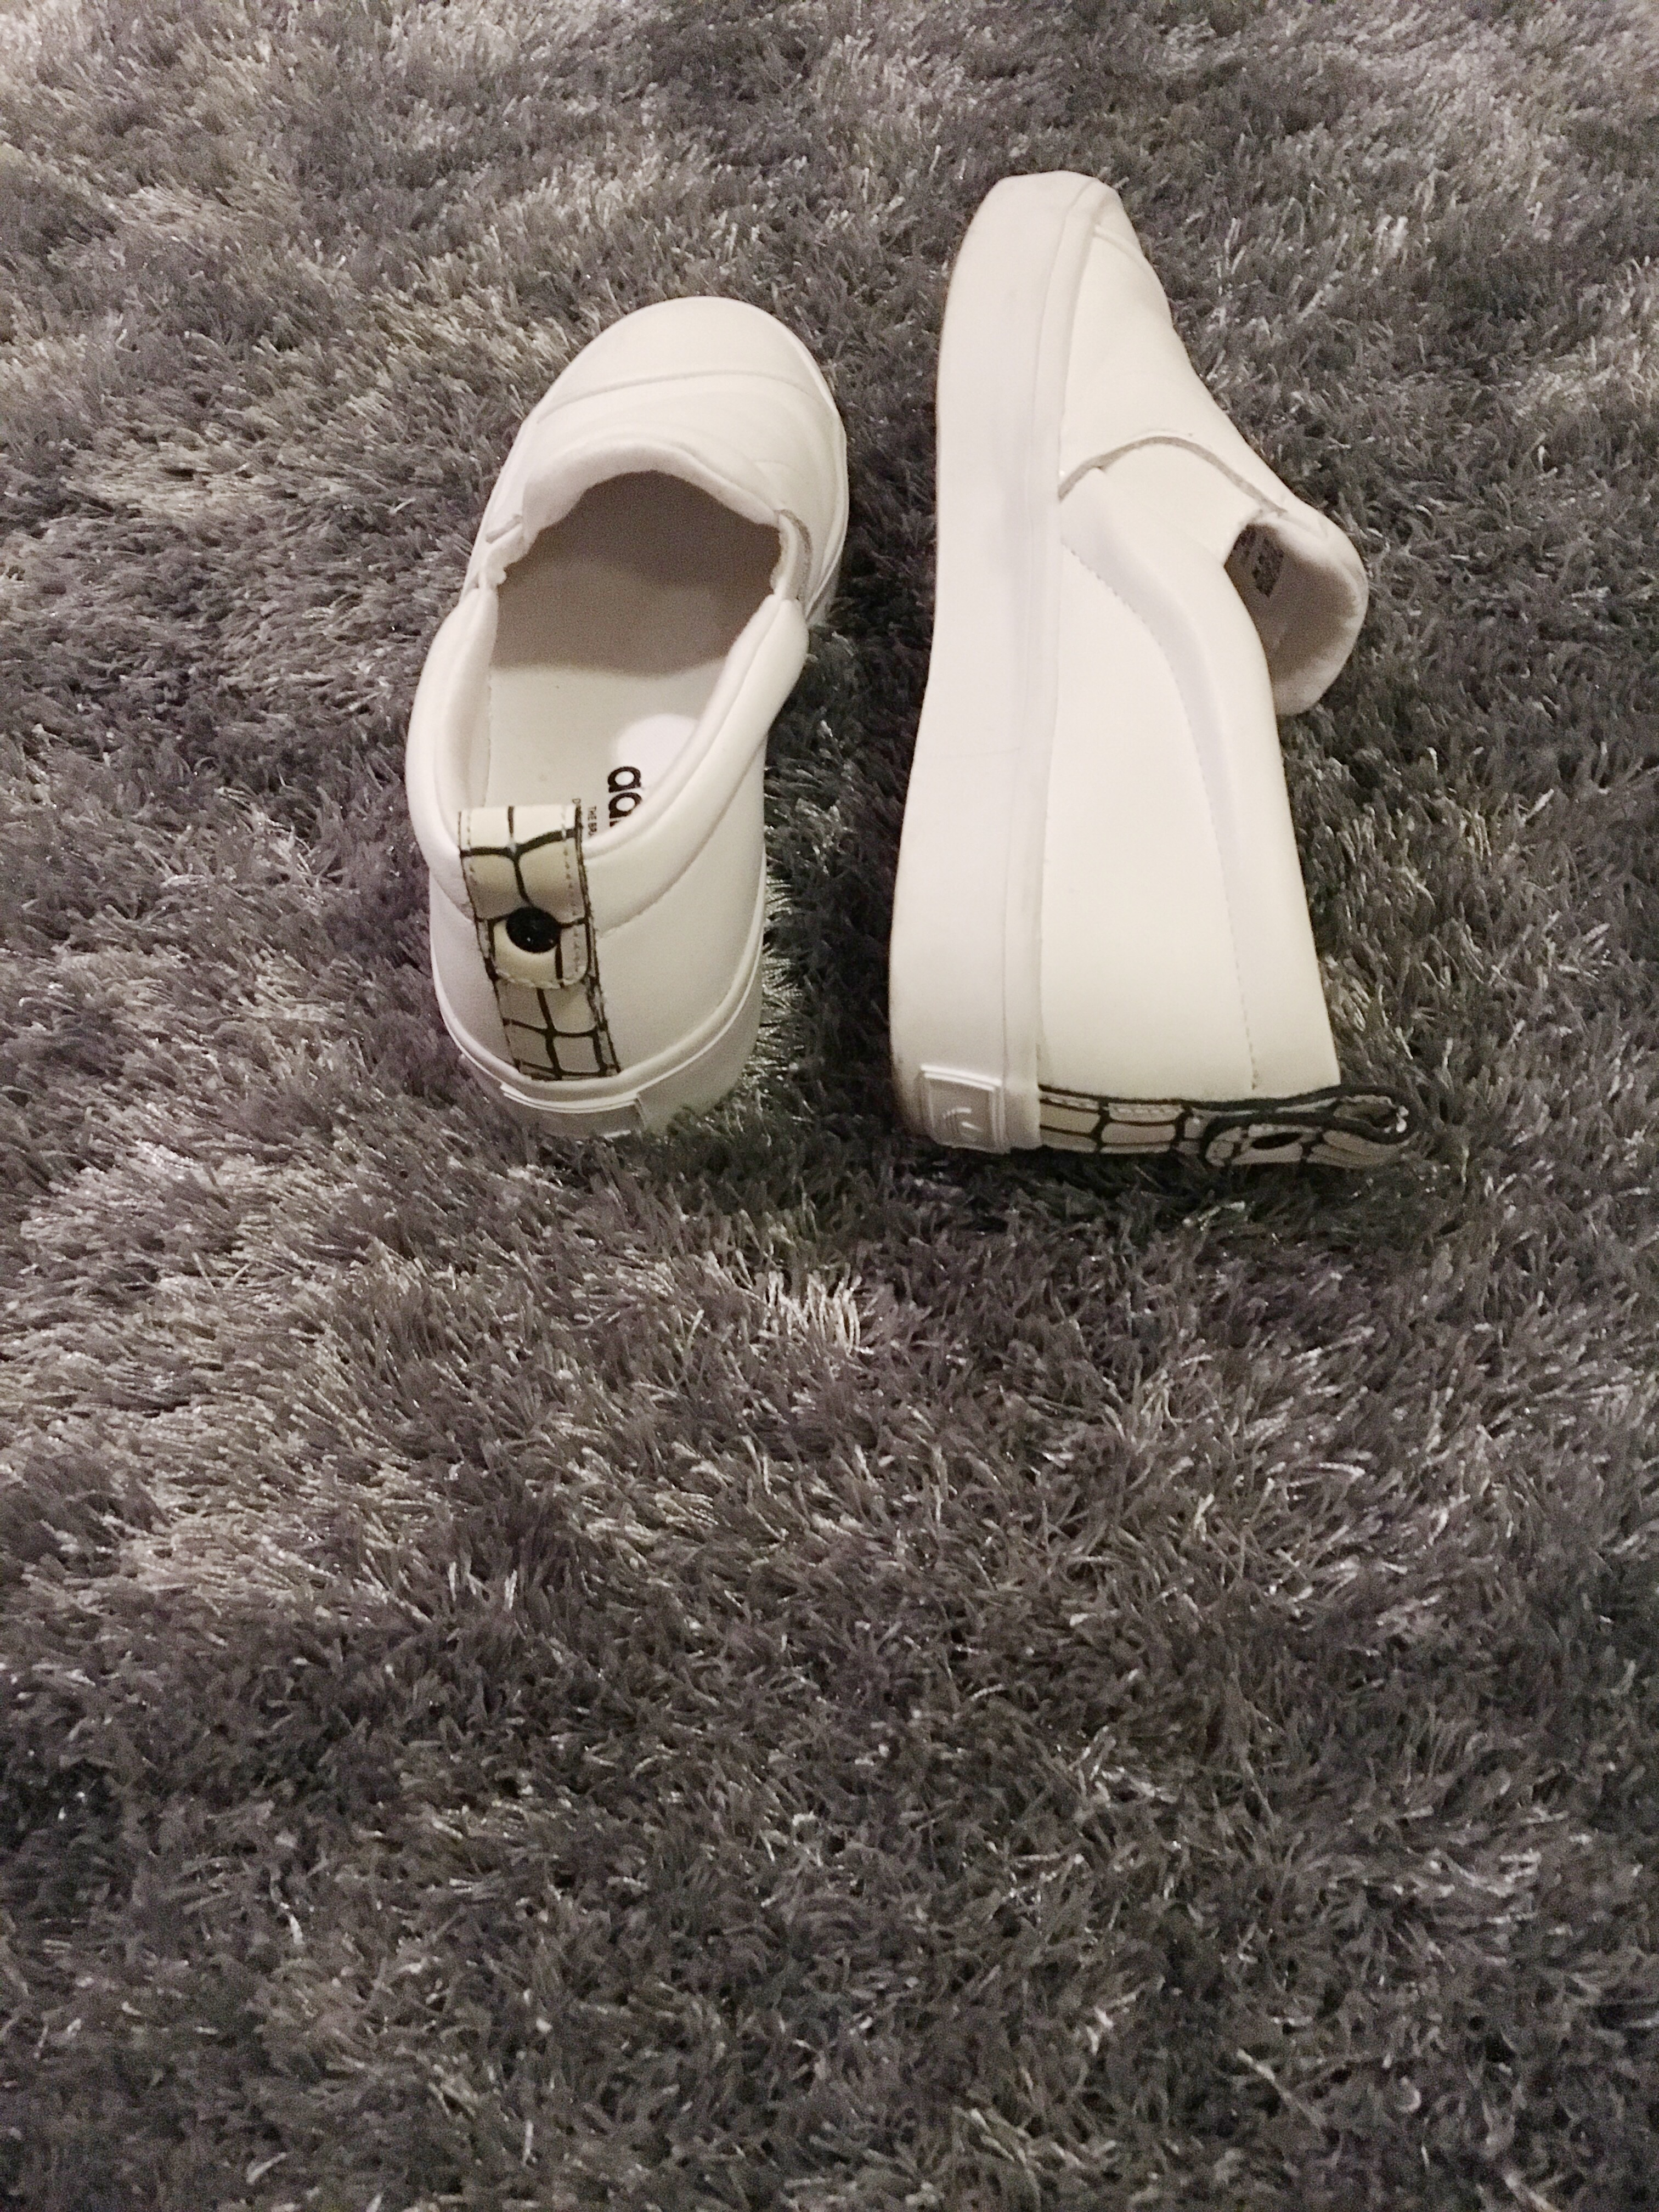 Slip-on Adidas blanches